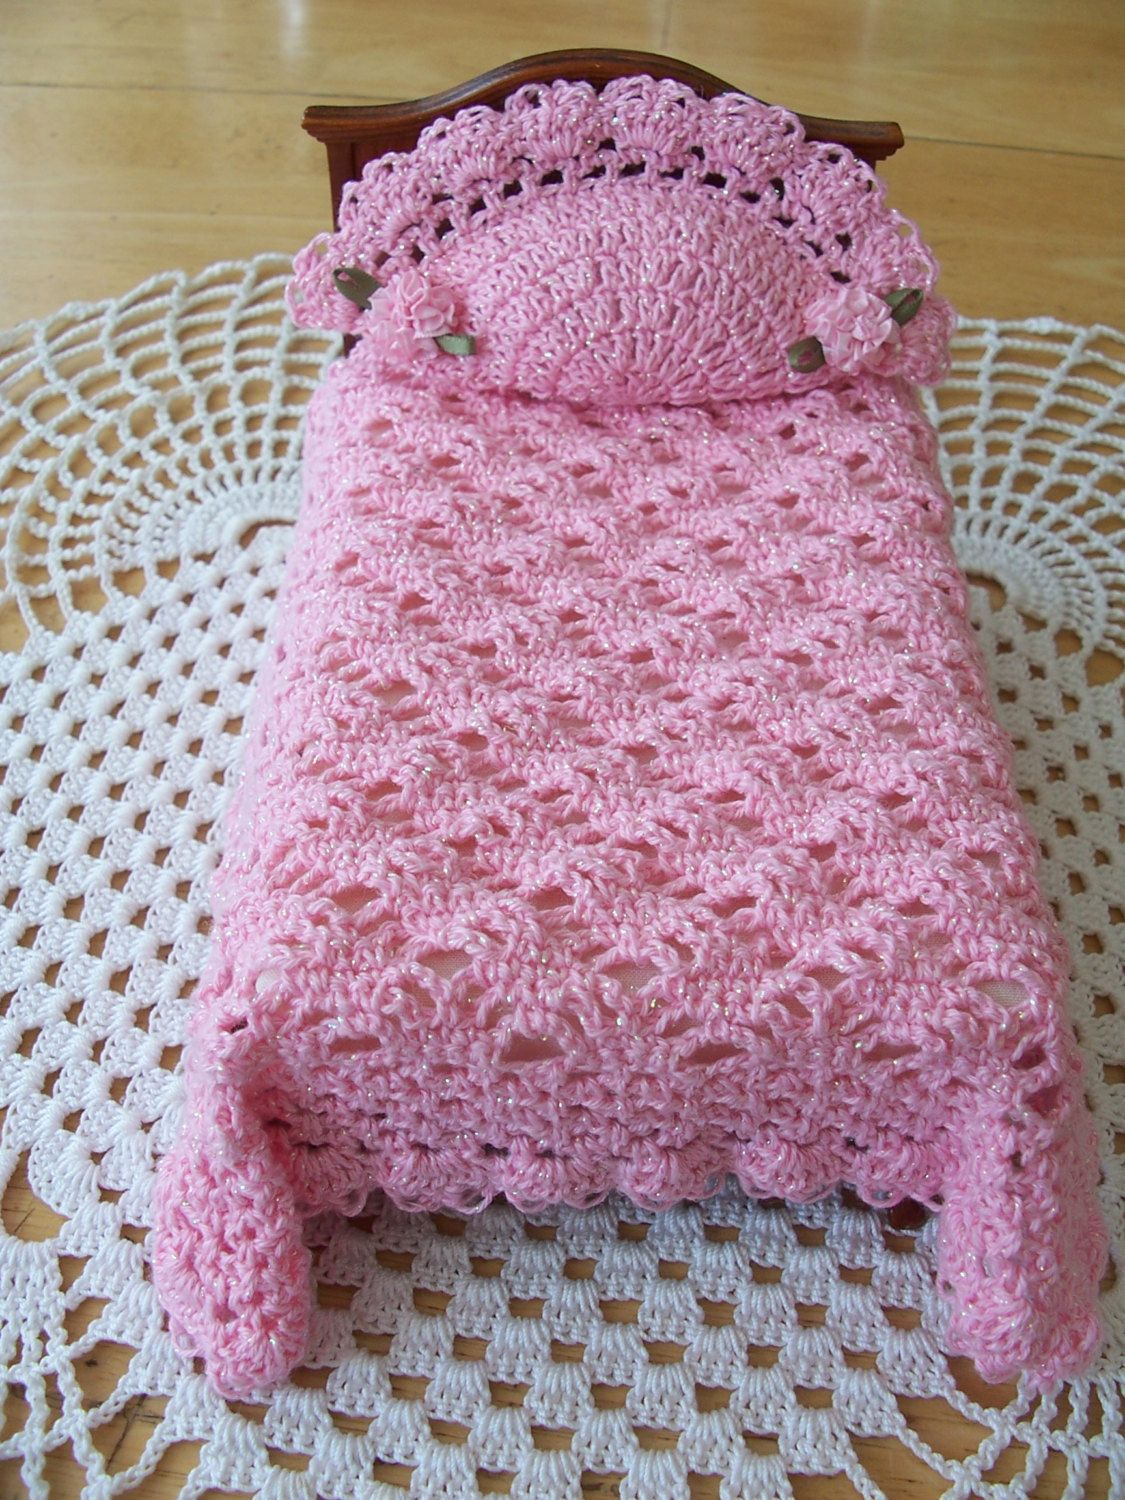 Miniature Crochet Dollhouse Bedspread Duvay In Pink With